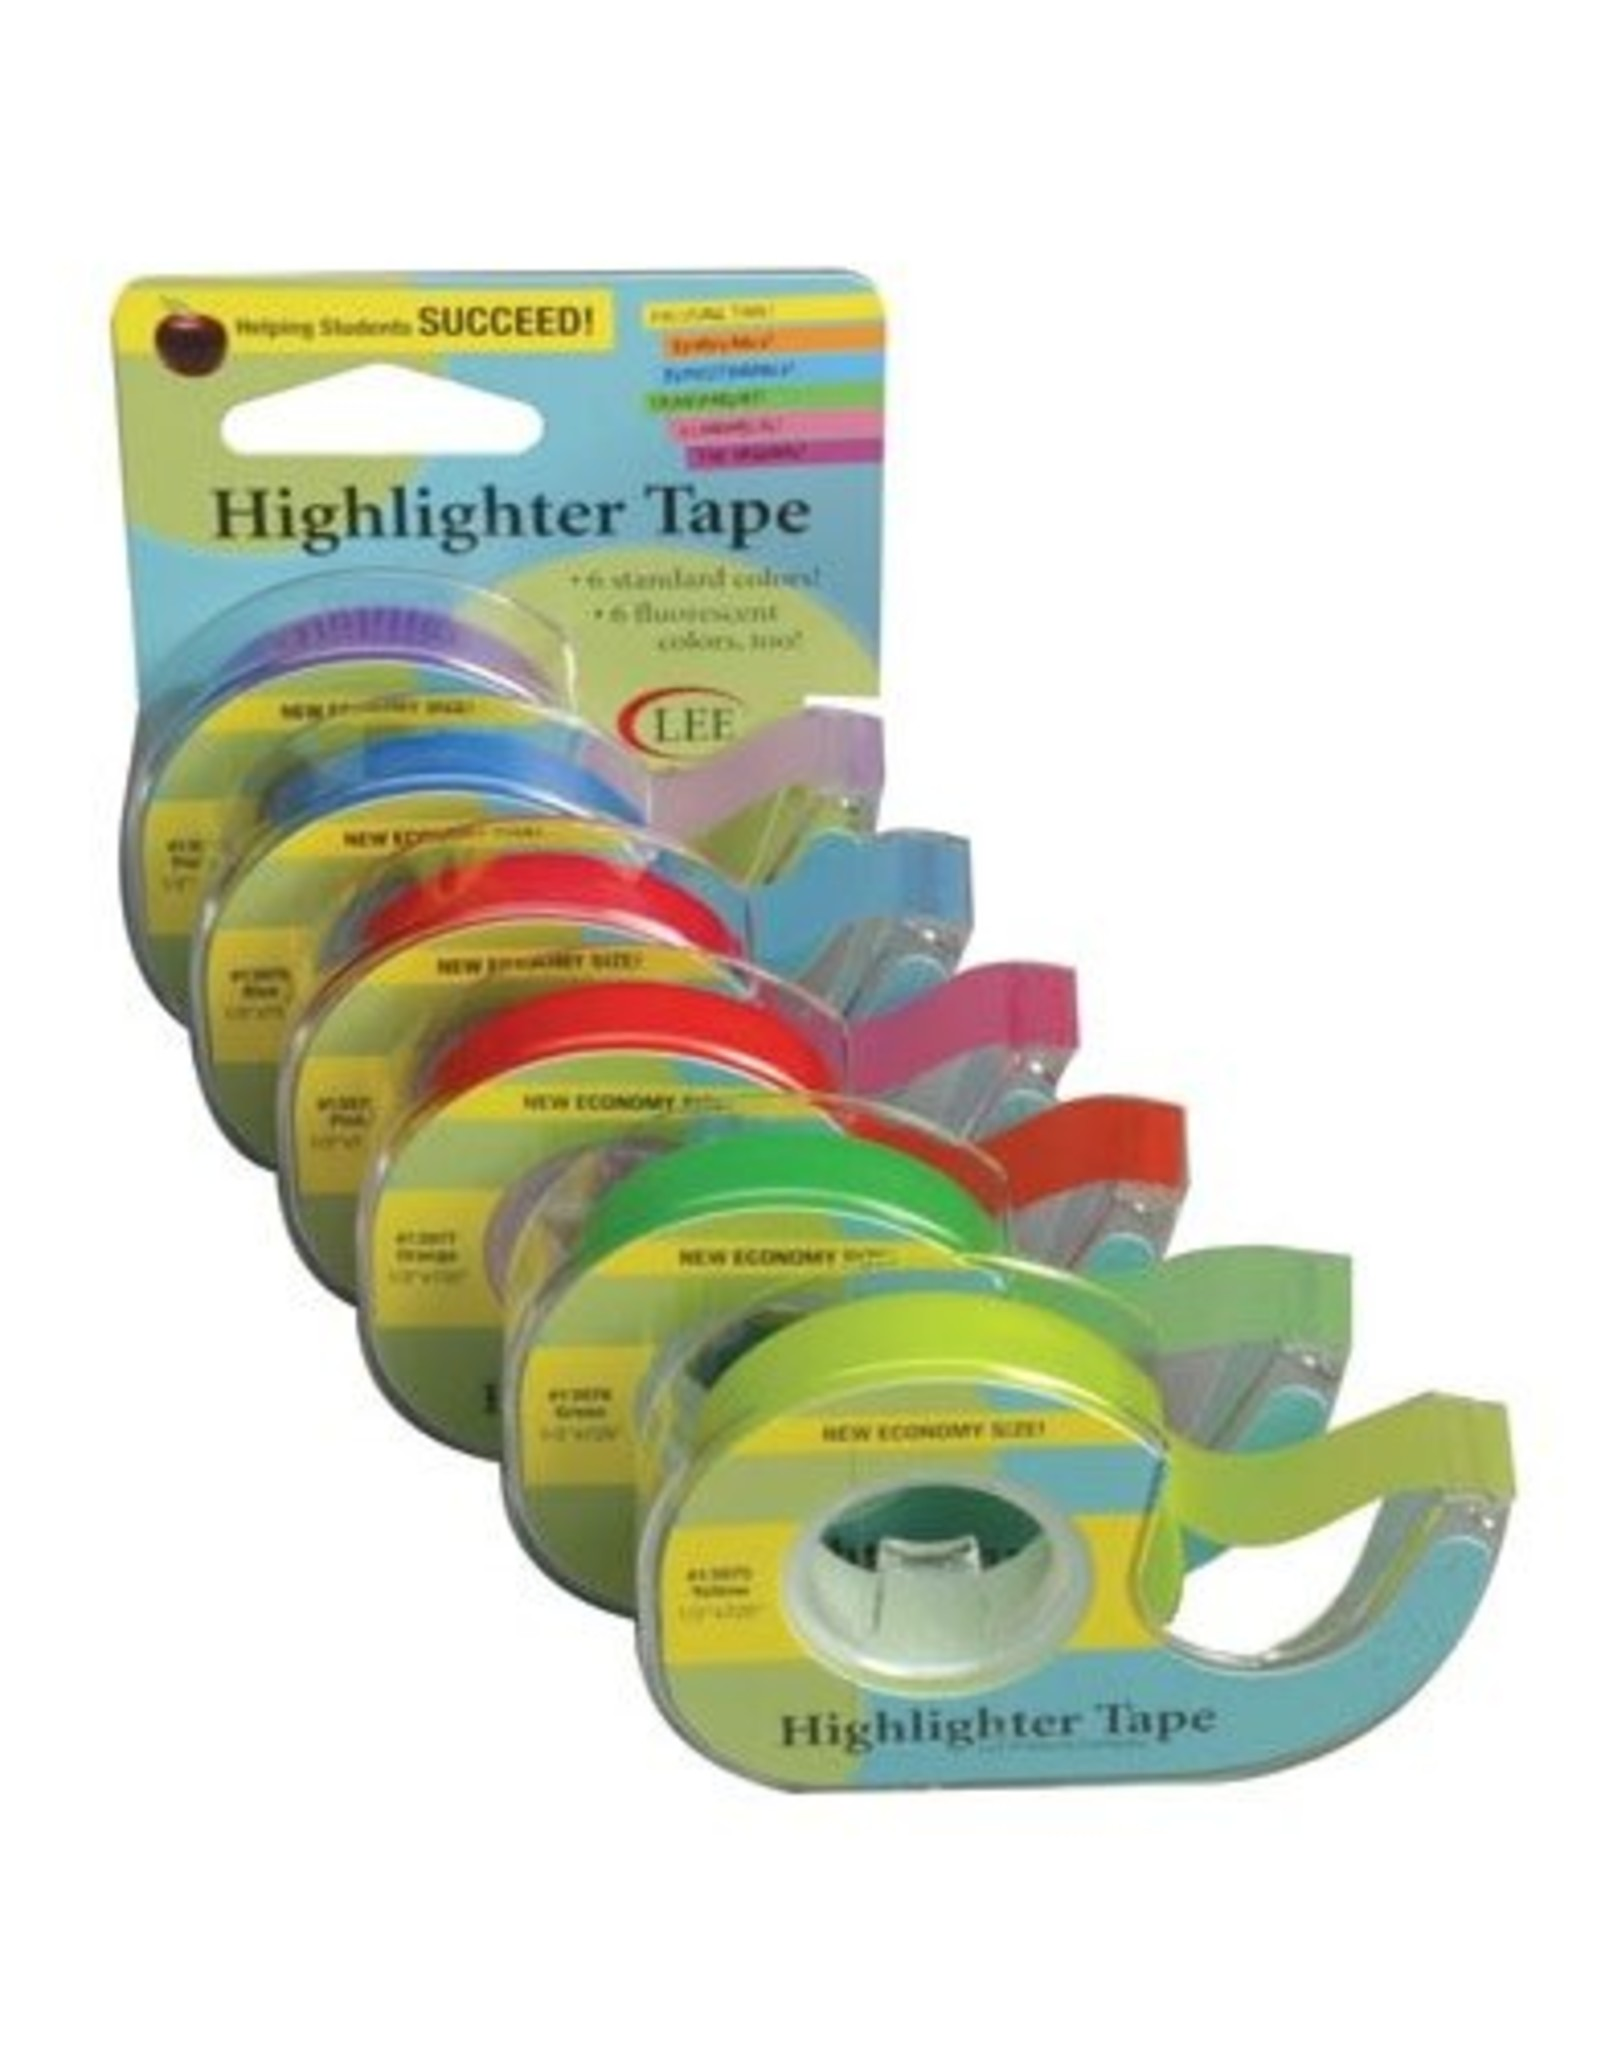 Highlighter Tape green